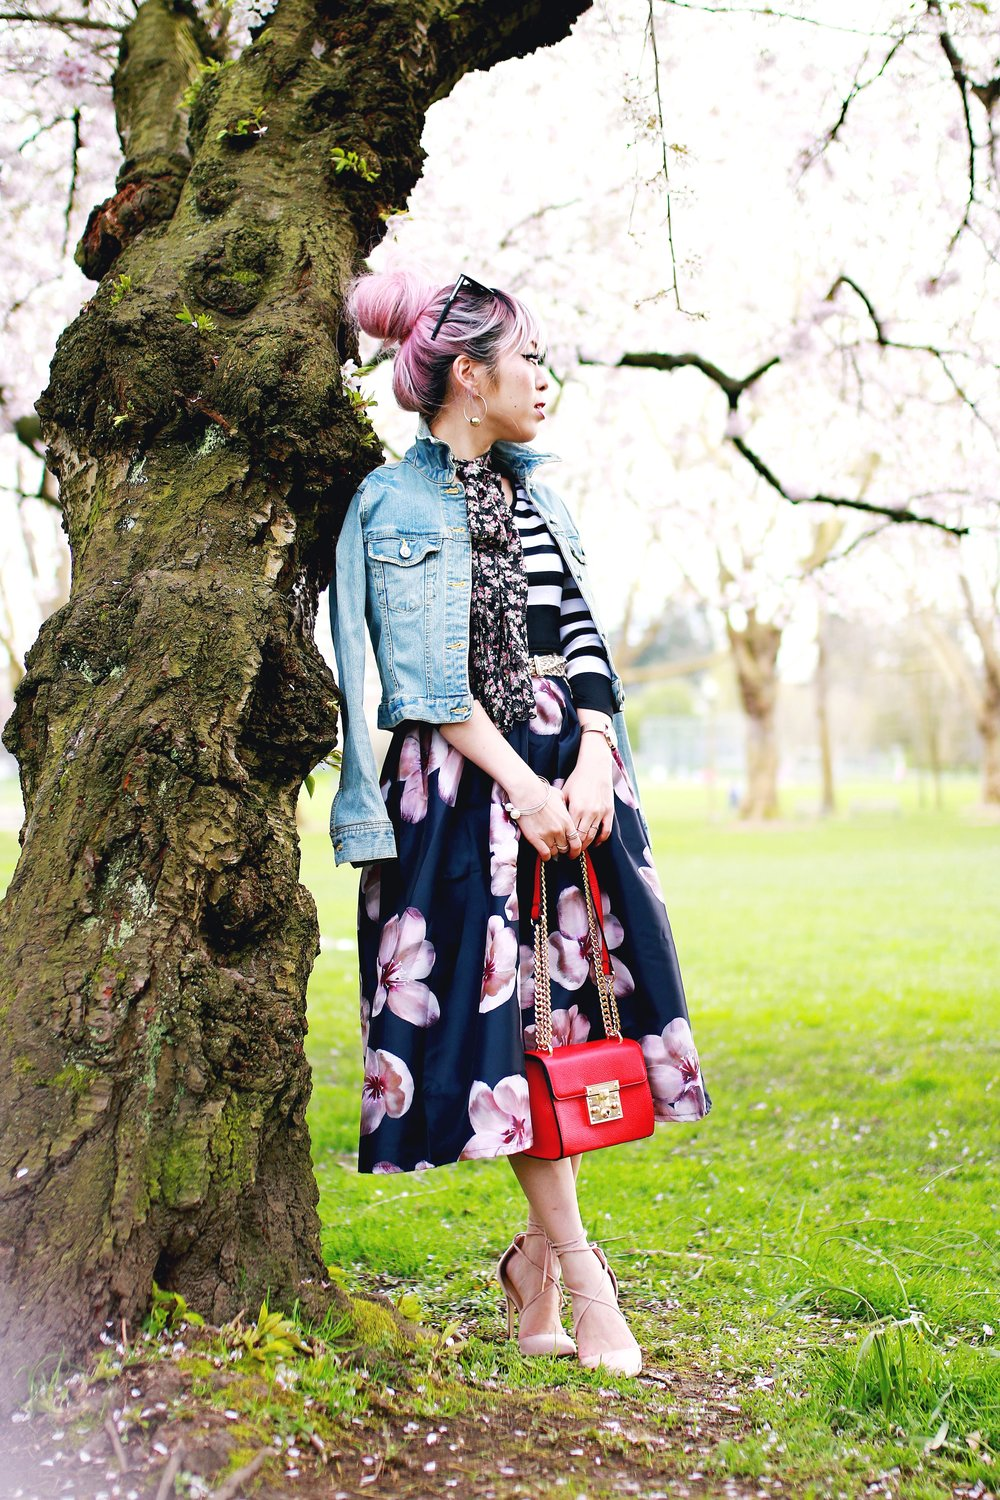 Charlotte Russe Striped Cropped Top-She In Floral Print Midi Skirt-Floral Print Think Scarf-Mellow World Red Mini Bag-Christian Paul 35MM ROSE GOLD/WHITE RAW MESH watch- Argento Vivo Earrings-Just Fab Lace up pumps- Aikas Love Closet-Seattle Fashion Style Blogger-Japanese-Pink hair 5